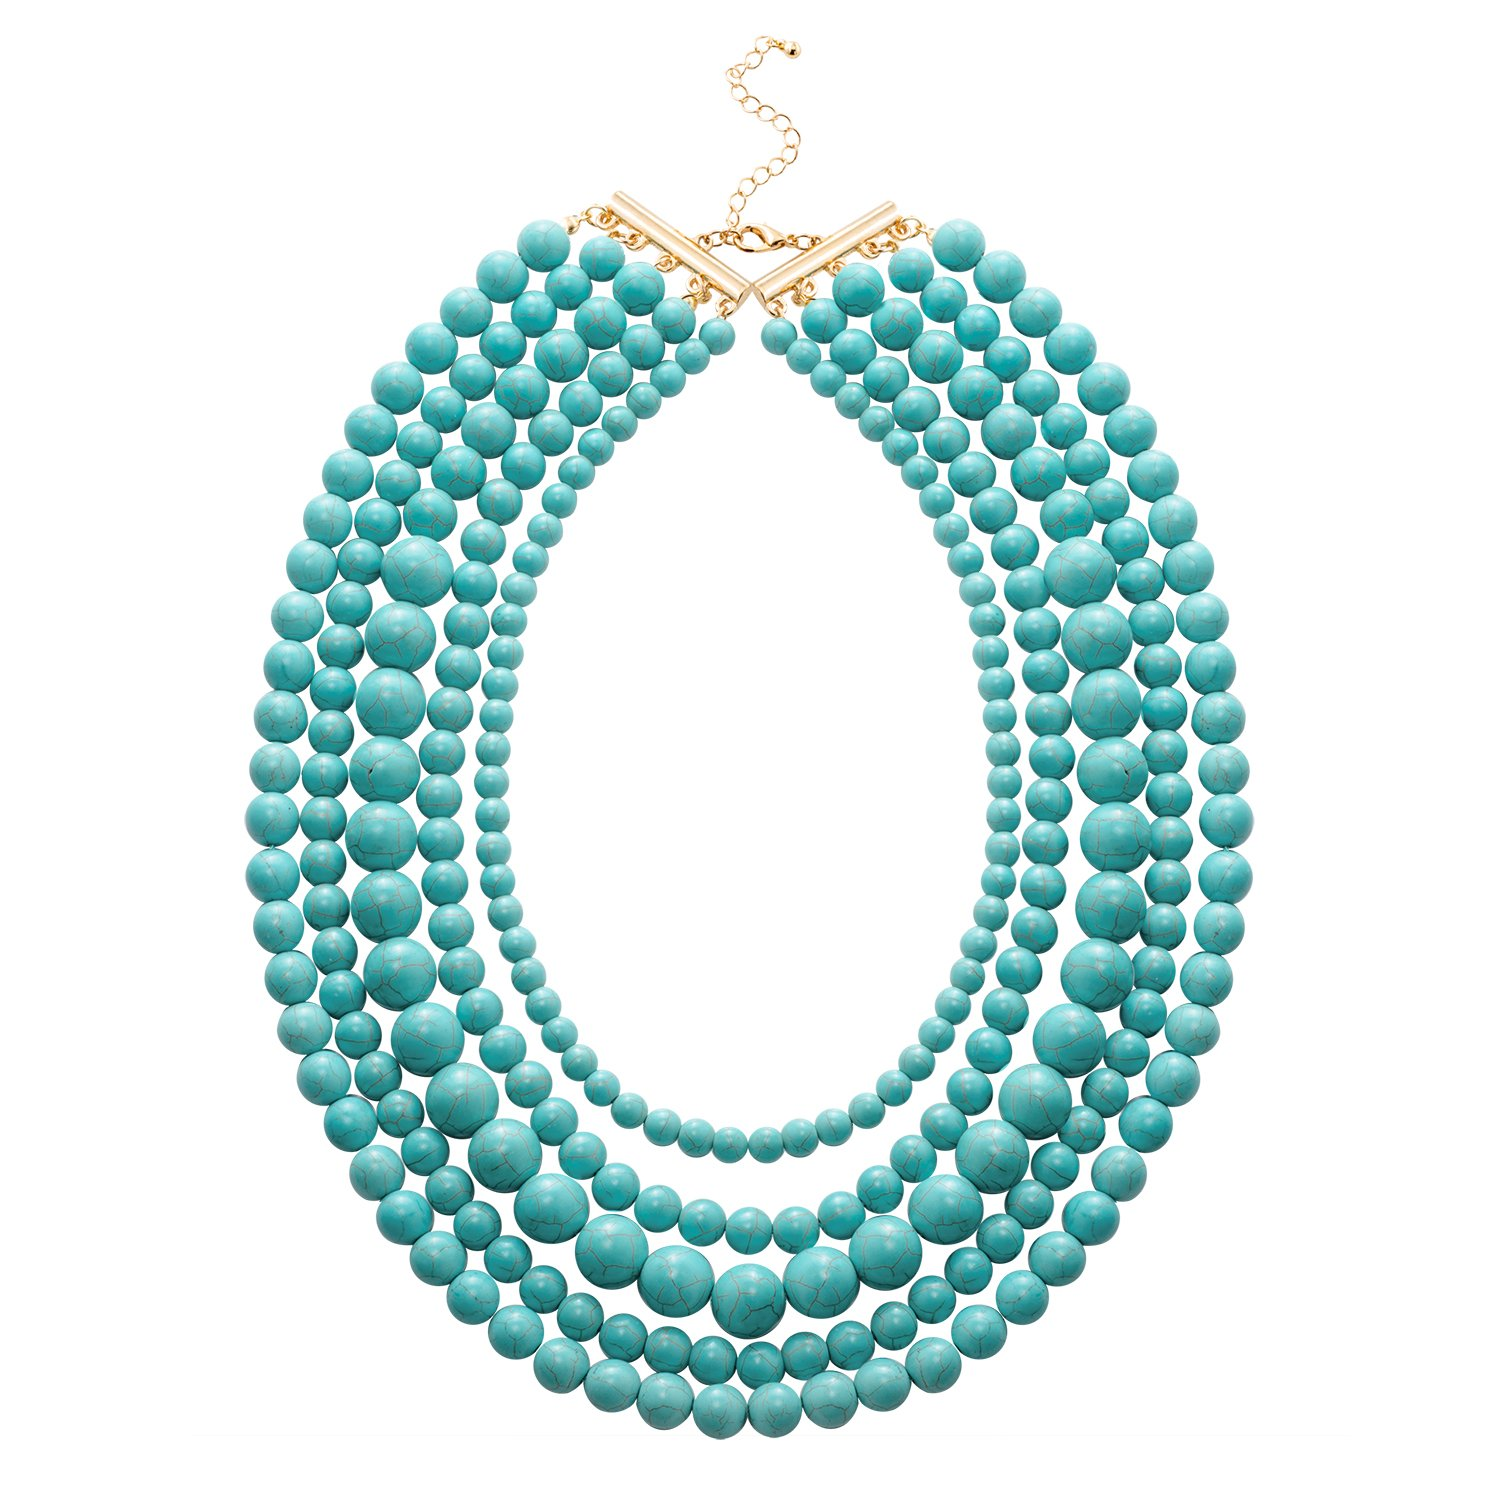 Jane Stone Statement Blue Turquoise Collar Necklace Multi-layered Fashion Chunky Long Beads Beaded Jewelry for Women